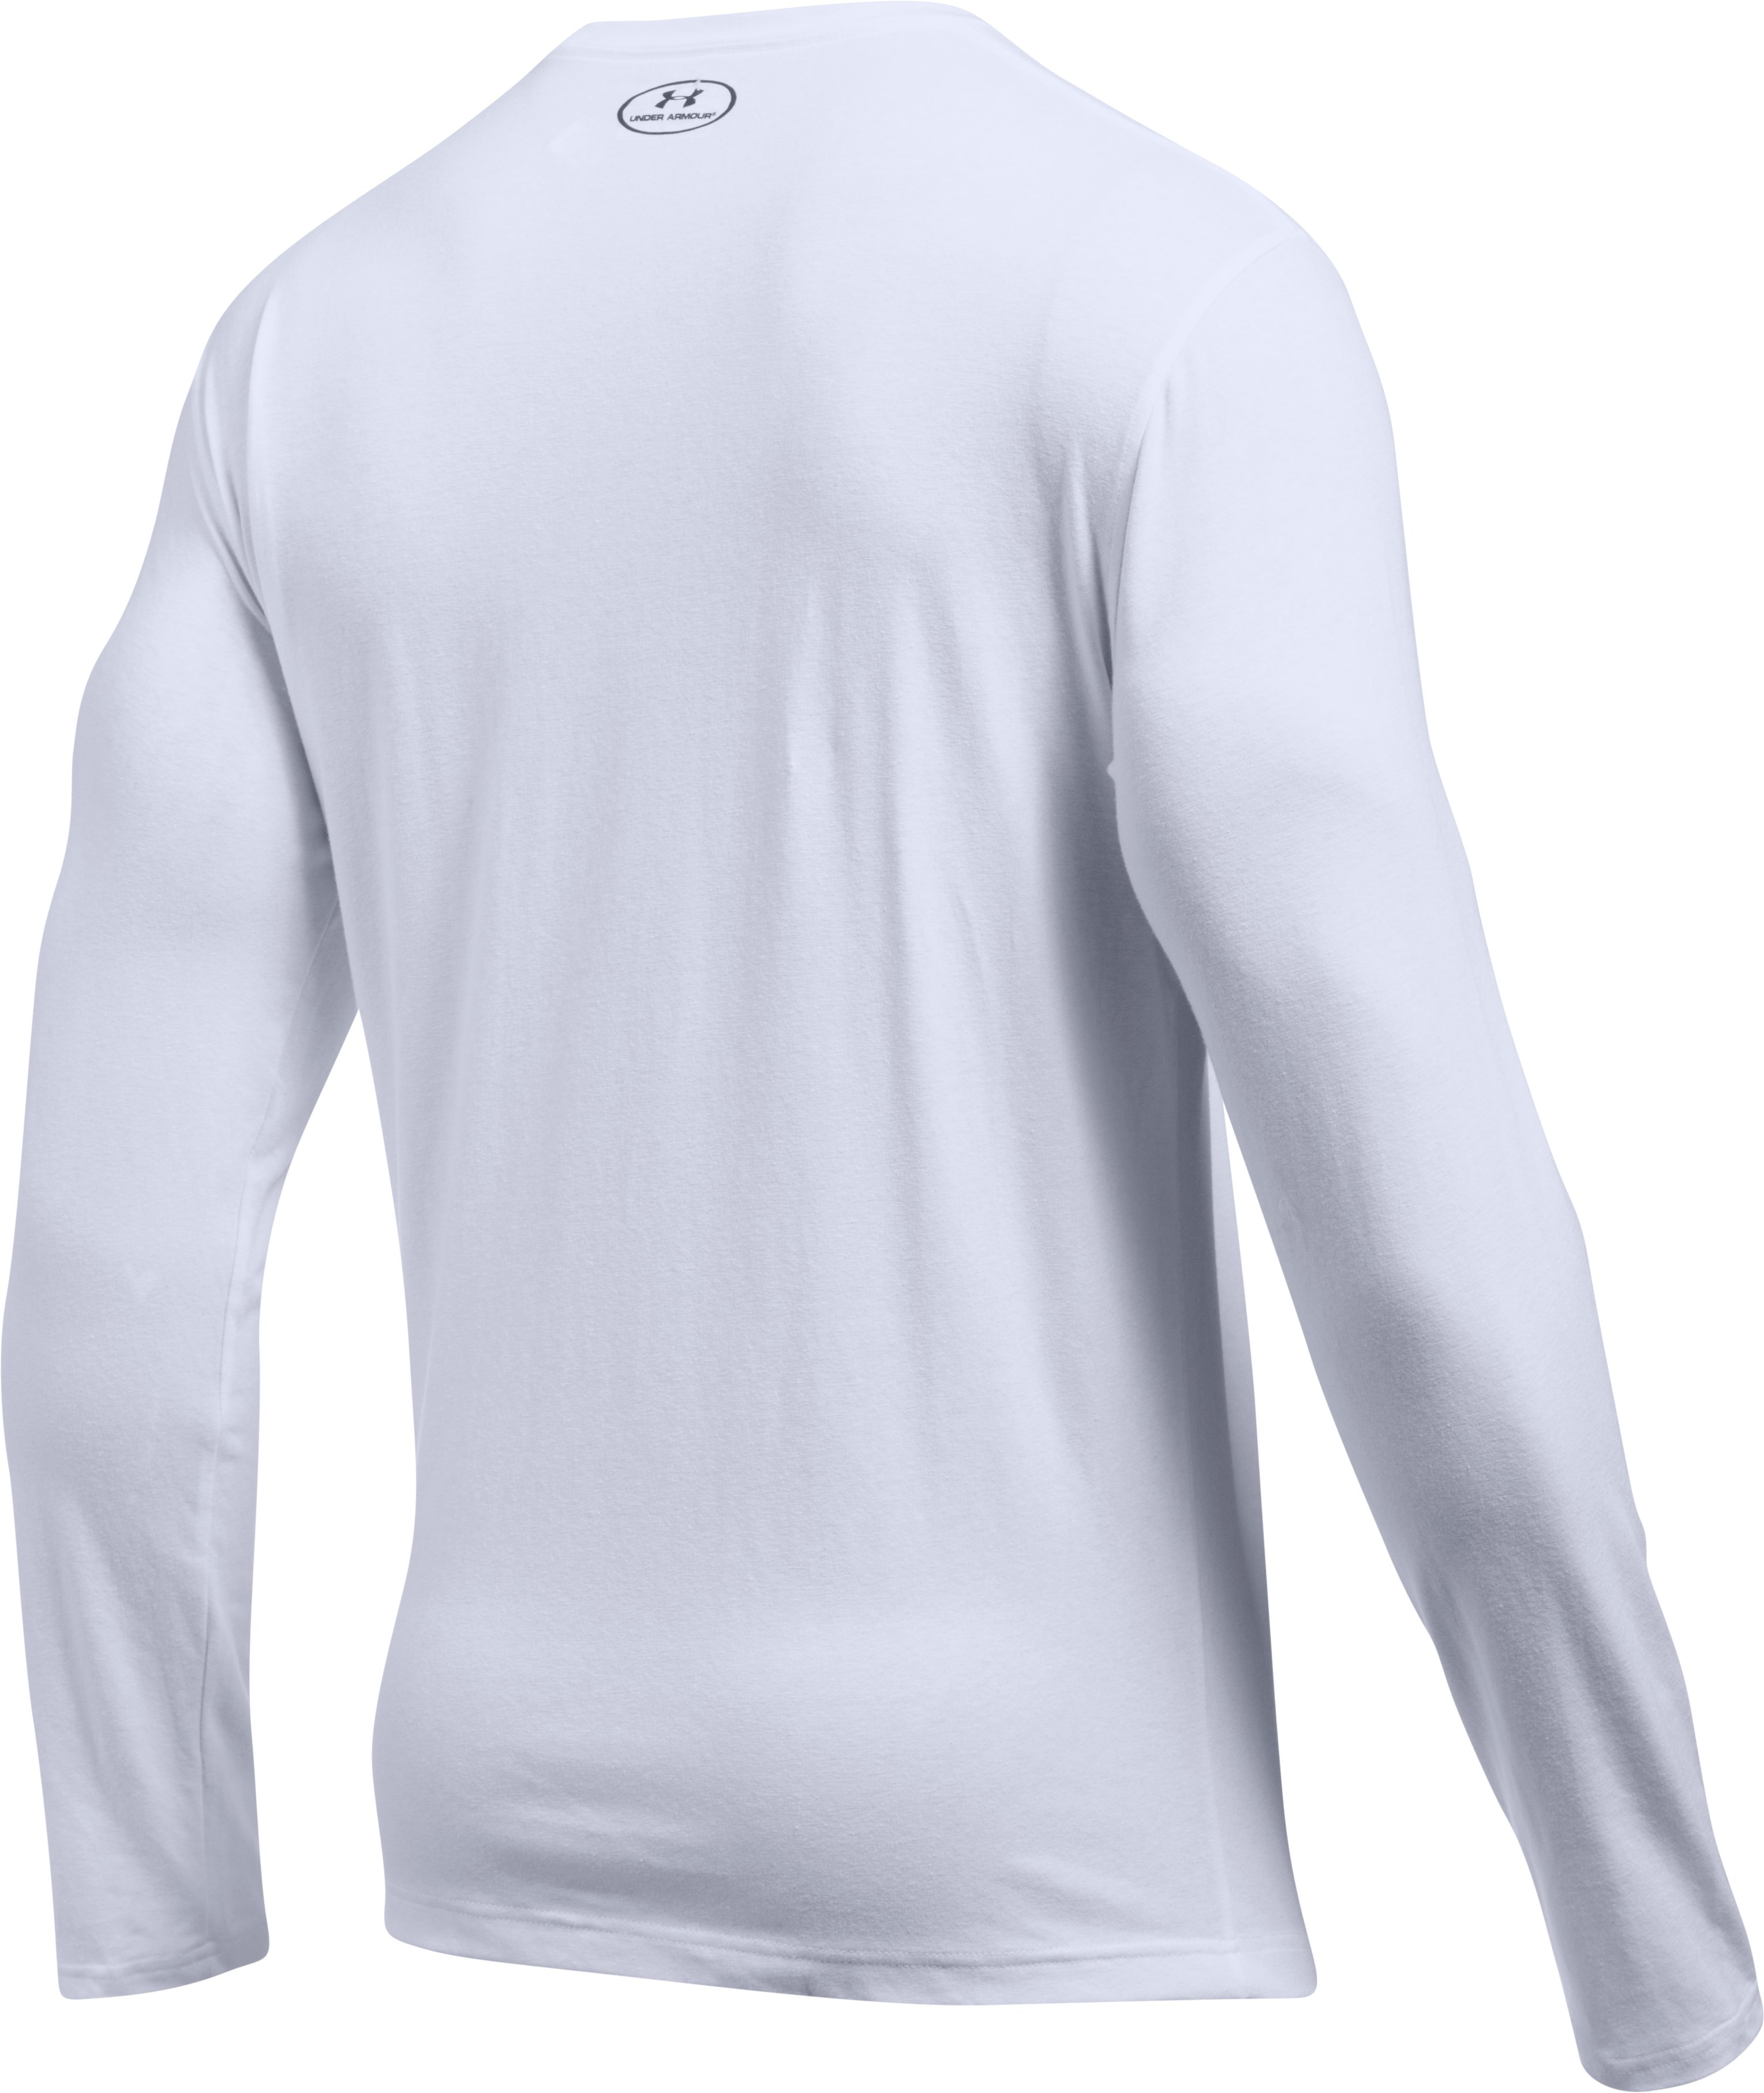 Men's UA Sleeve Hit Long Sleeve T-Shirt, White, undefined